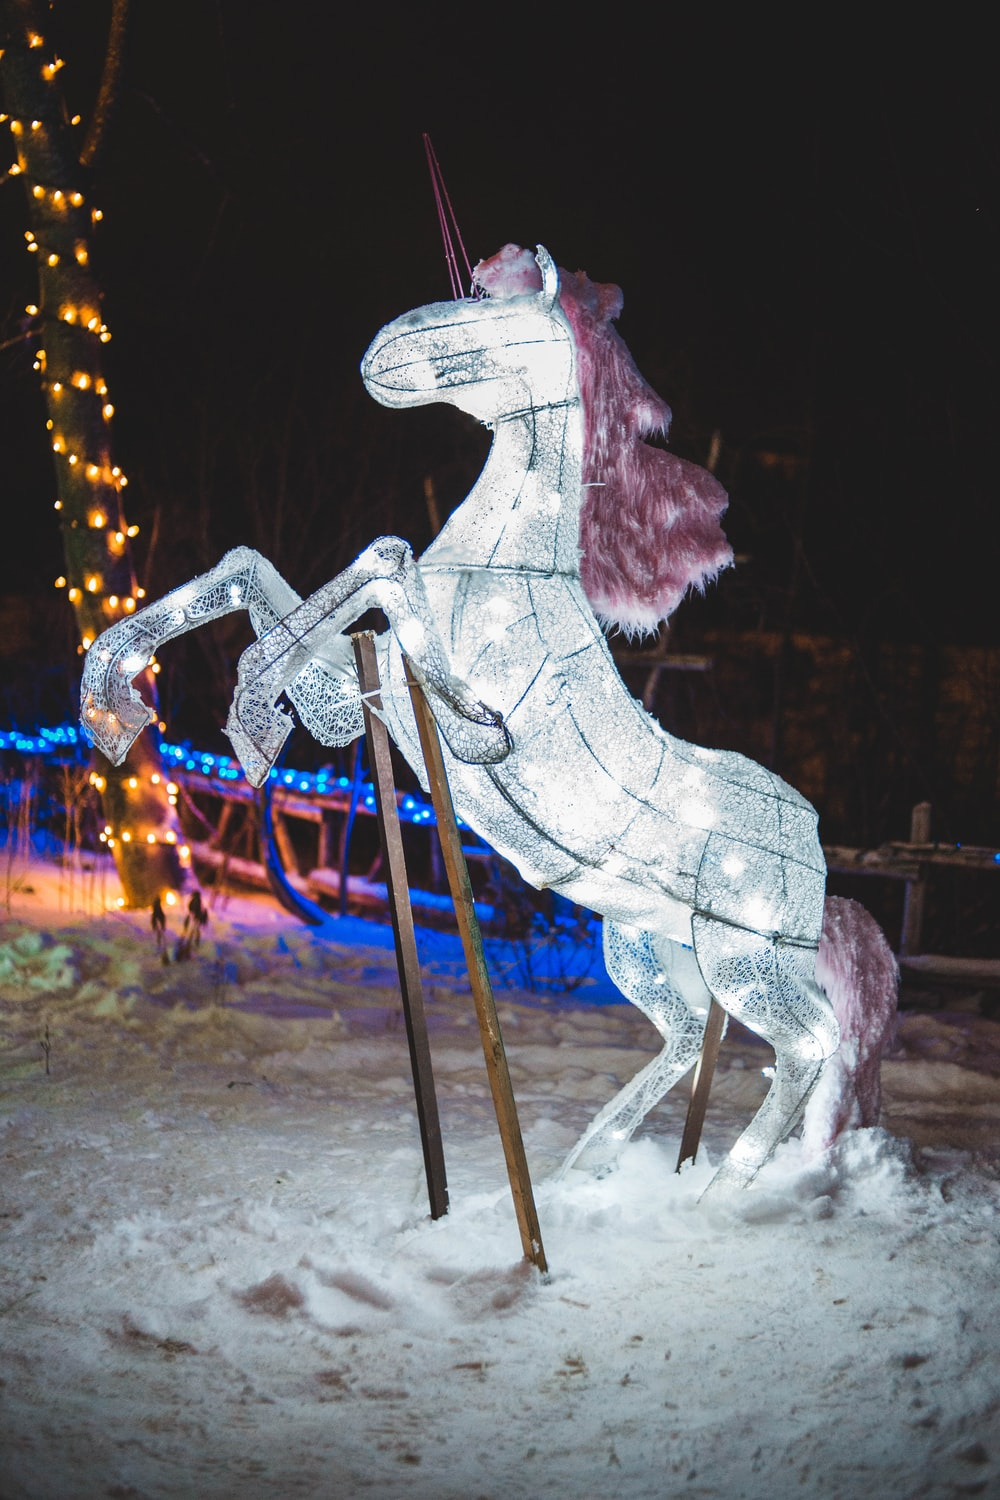 white rearing horse Christmas decor during night time